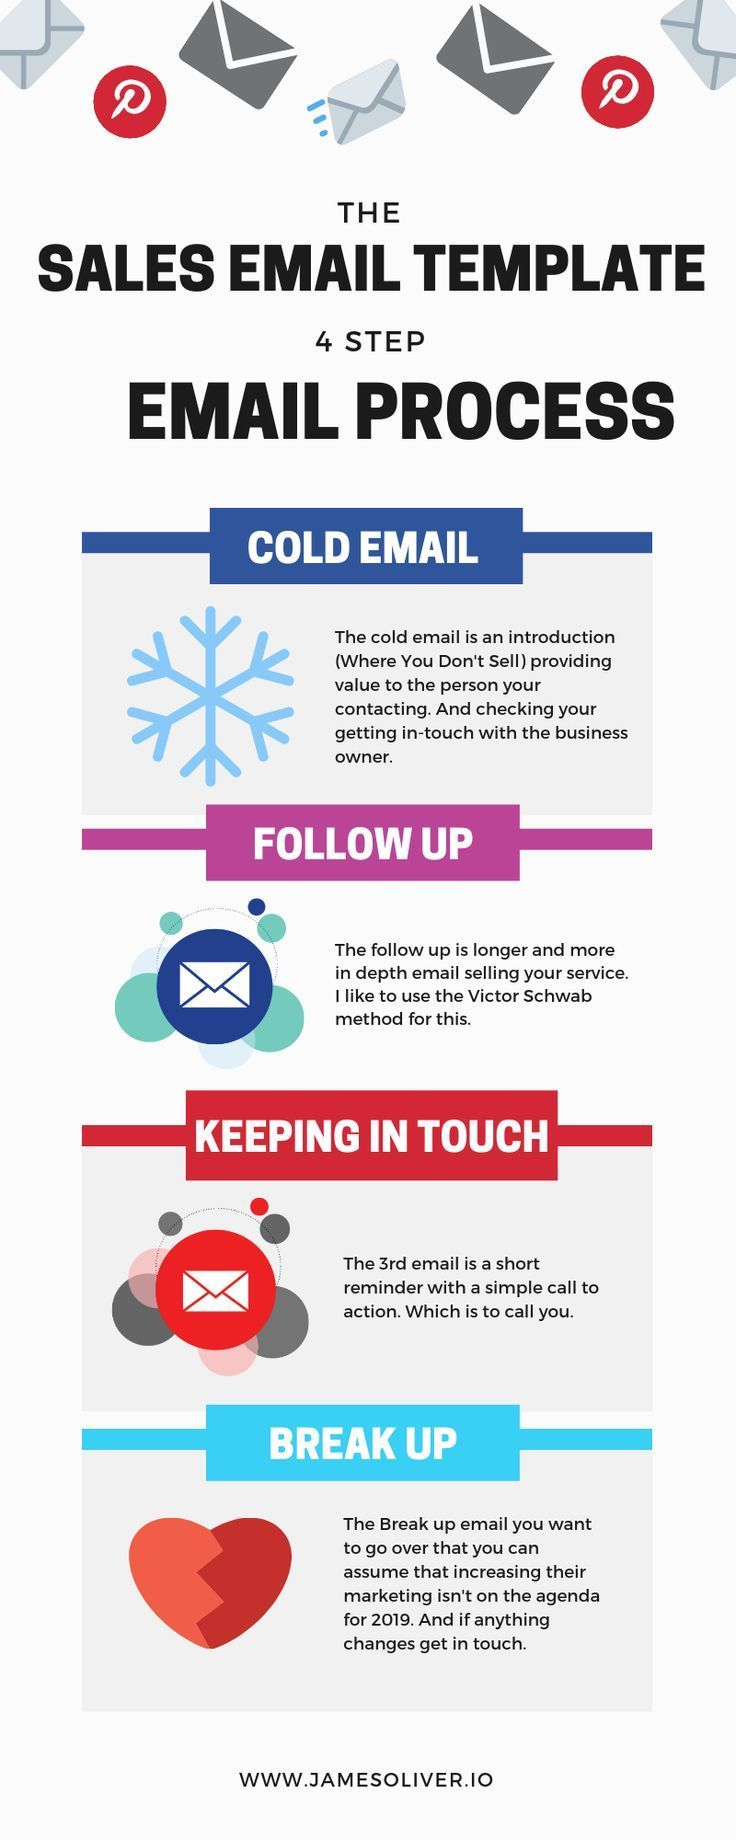 Digital Marketing Digital Marketing The Sales Email Template Infographicnow Com Your Number One Source For Daily Infographics Visual Creativity Sales Email Template Email Templates Infographic Marketing